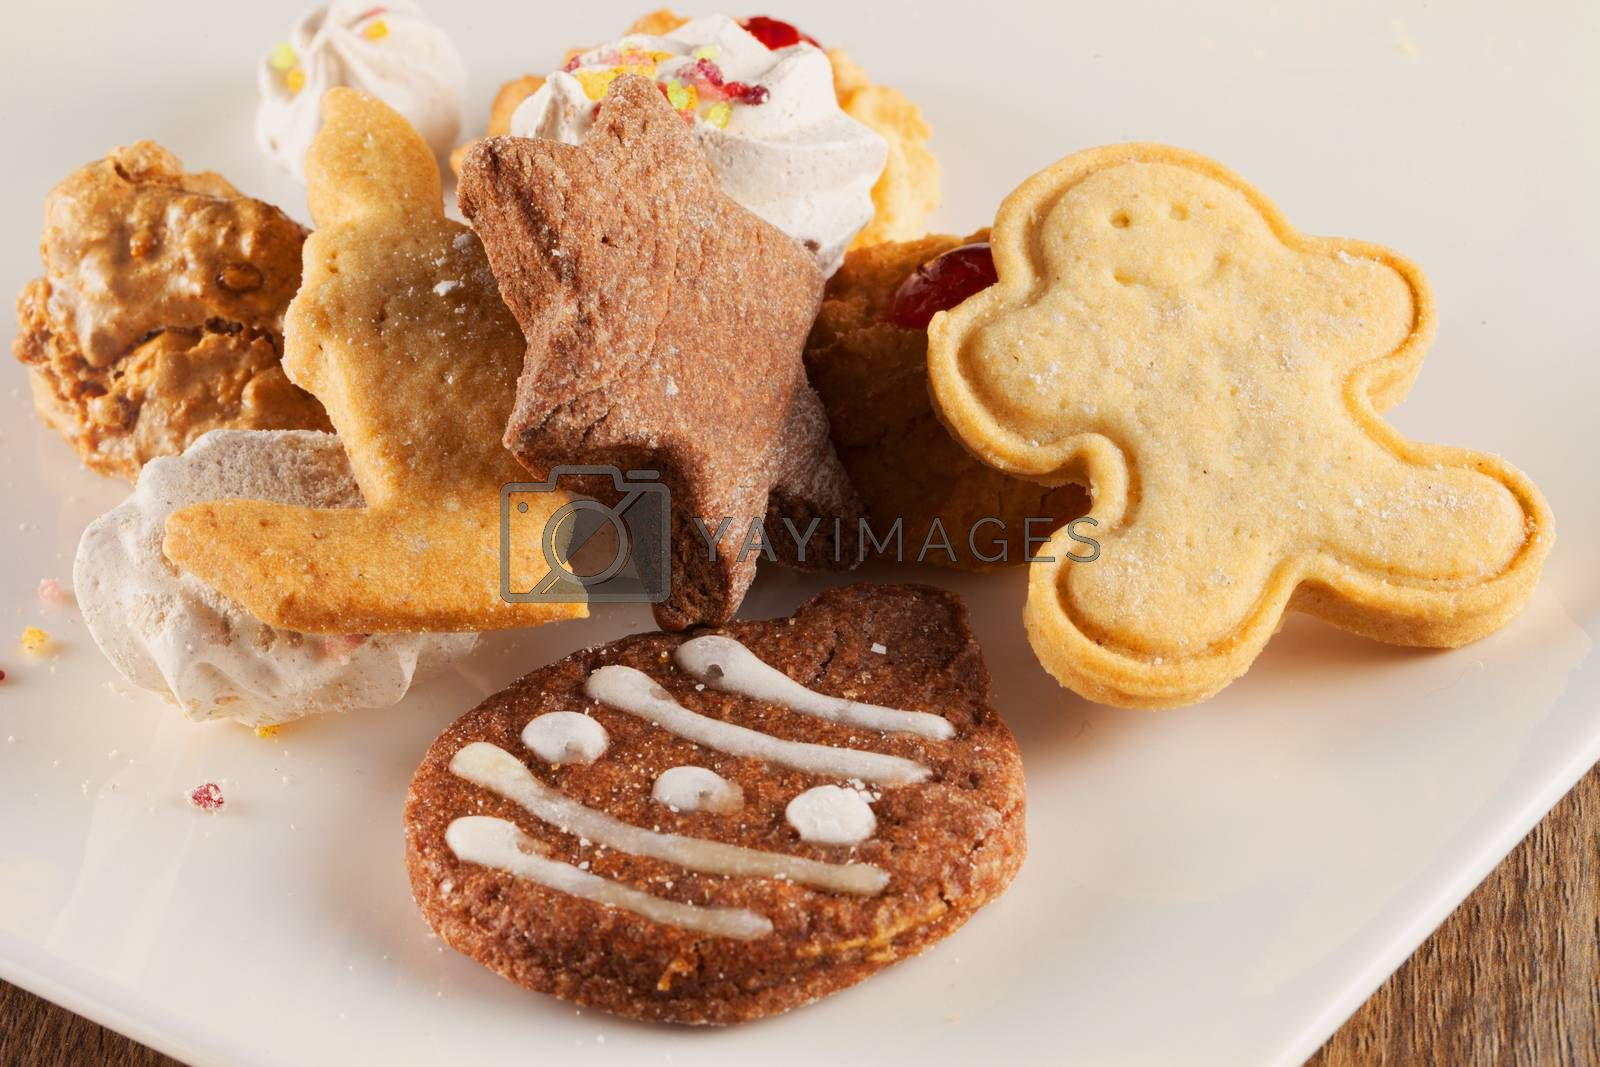 Christmas biscuits over white plate, horizontal image